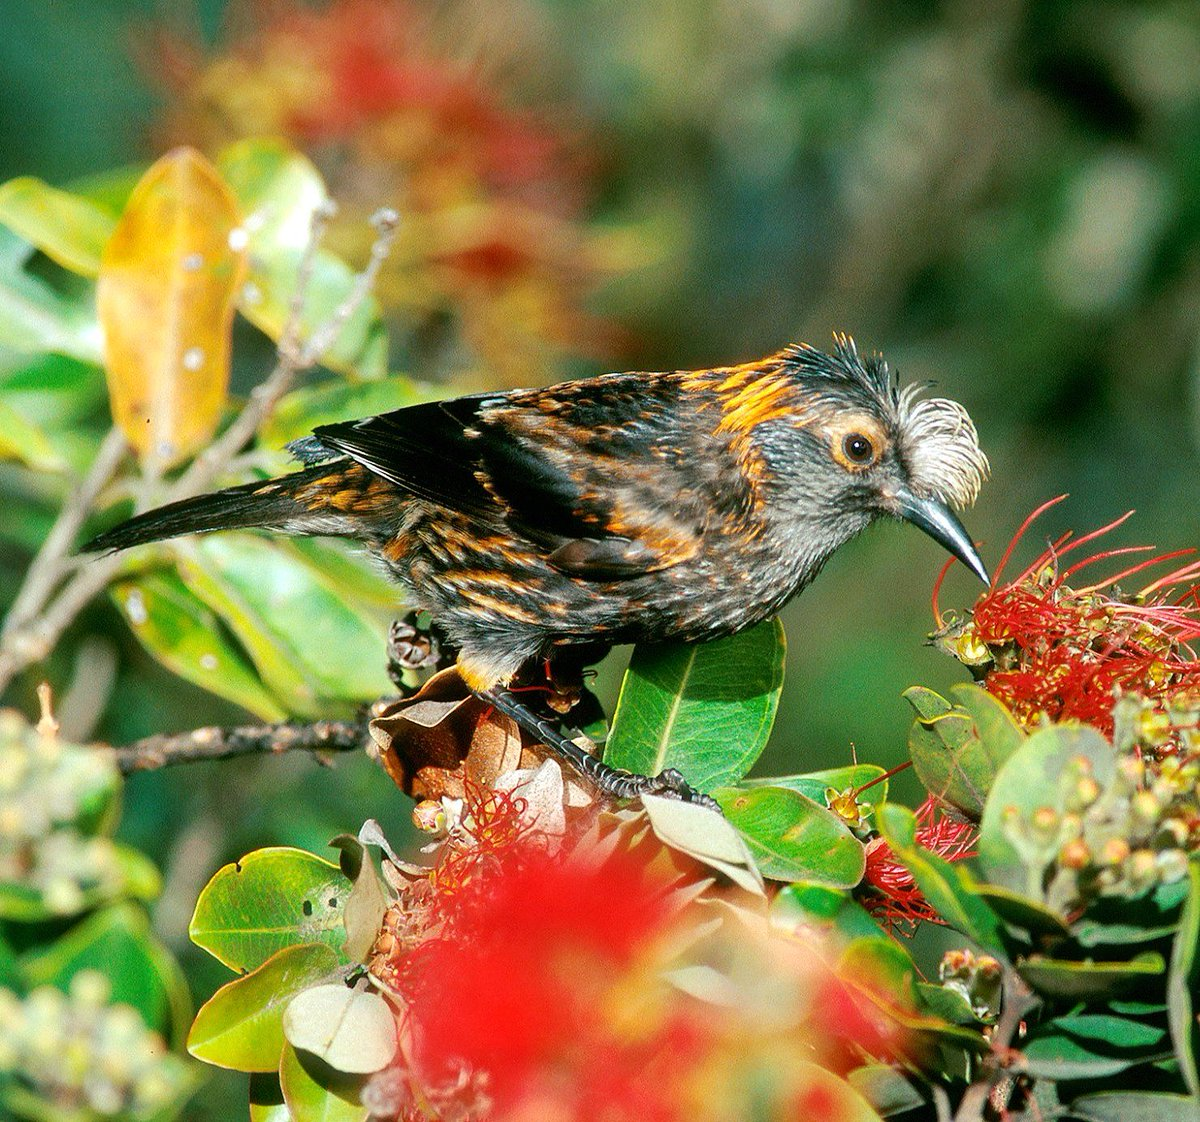 A story in the @NYTmag asks, Should some species be allowed to die out? Heres one of the birds we would likely lose if we said yes: the lovely Akohekohe of Hawaii. #NoExtinction buff.ly/2pmHF2P (Photo by Jack Jeffrey)